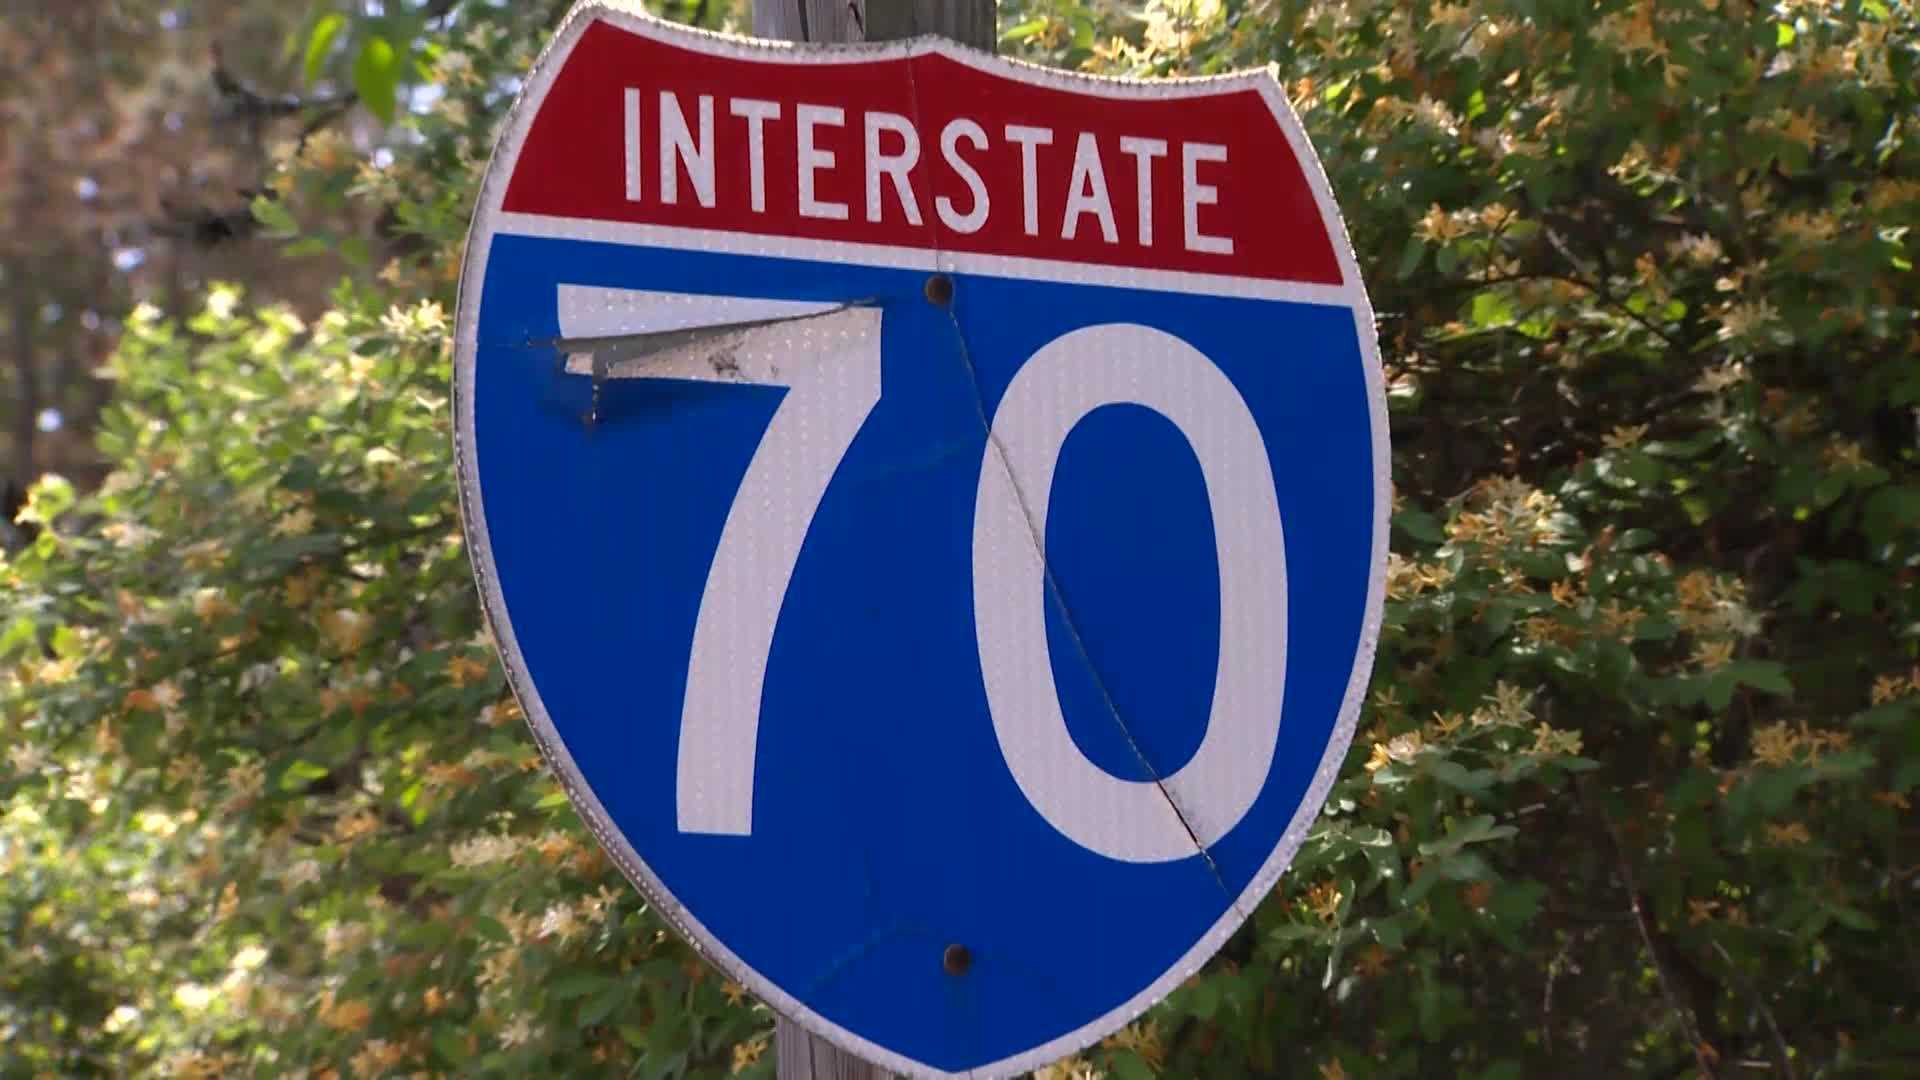 Interstate 70